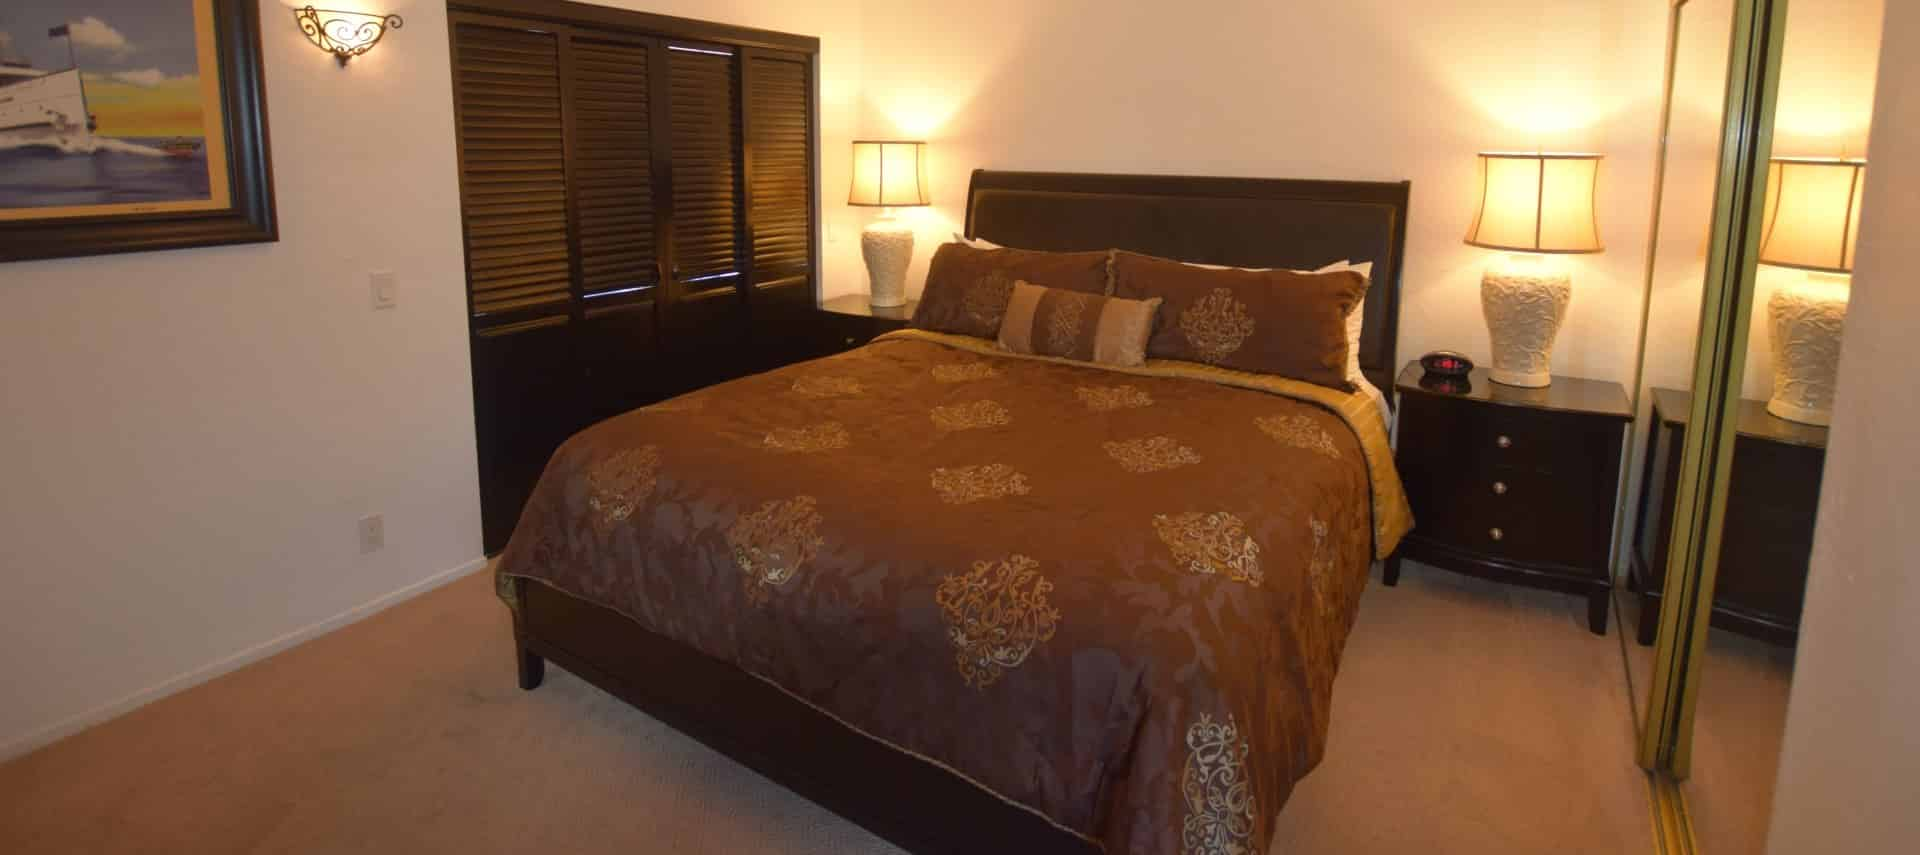 Dark wooden bed with brown and tan bedding with dark wood nightstands with white porcelain lamps